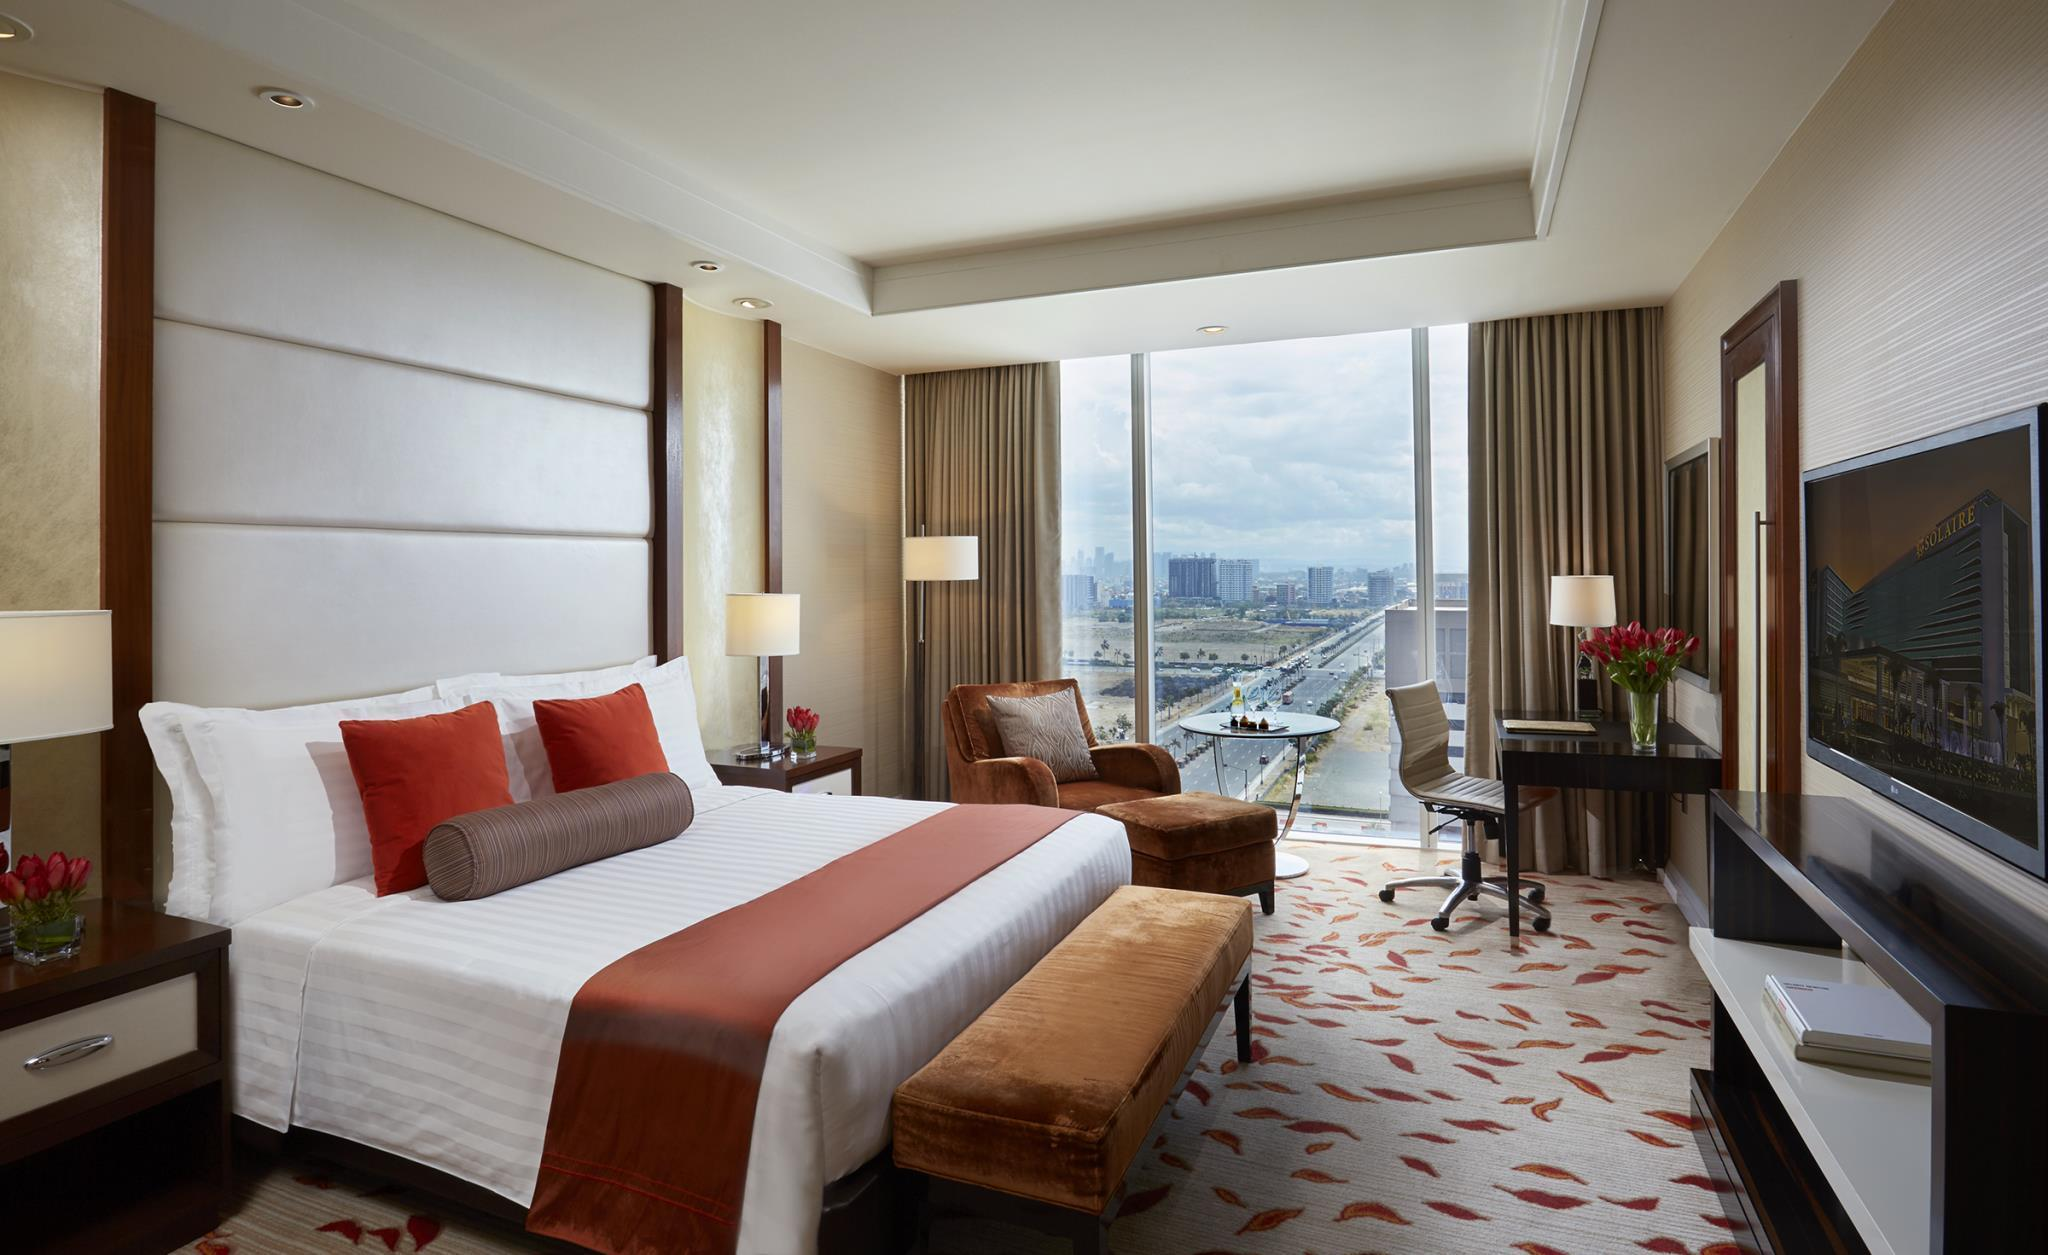 Deluxe City View King Room